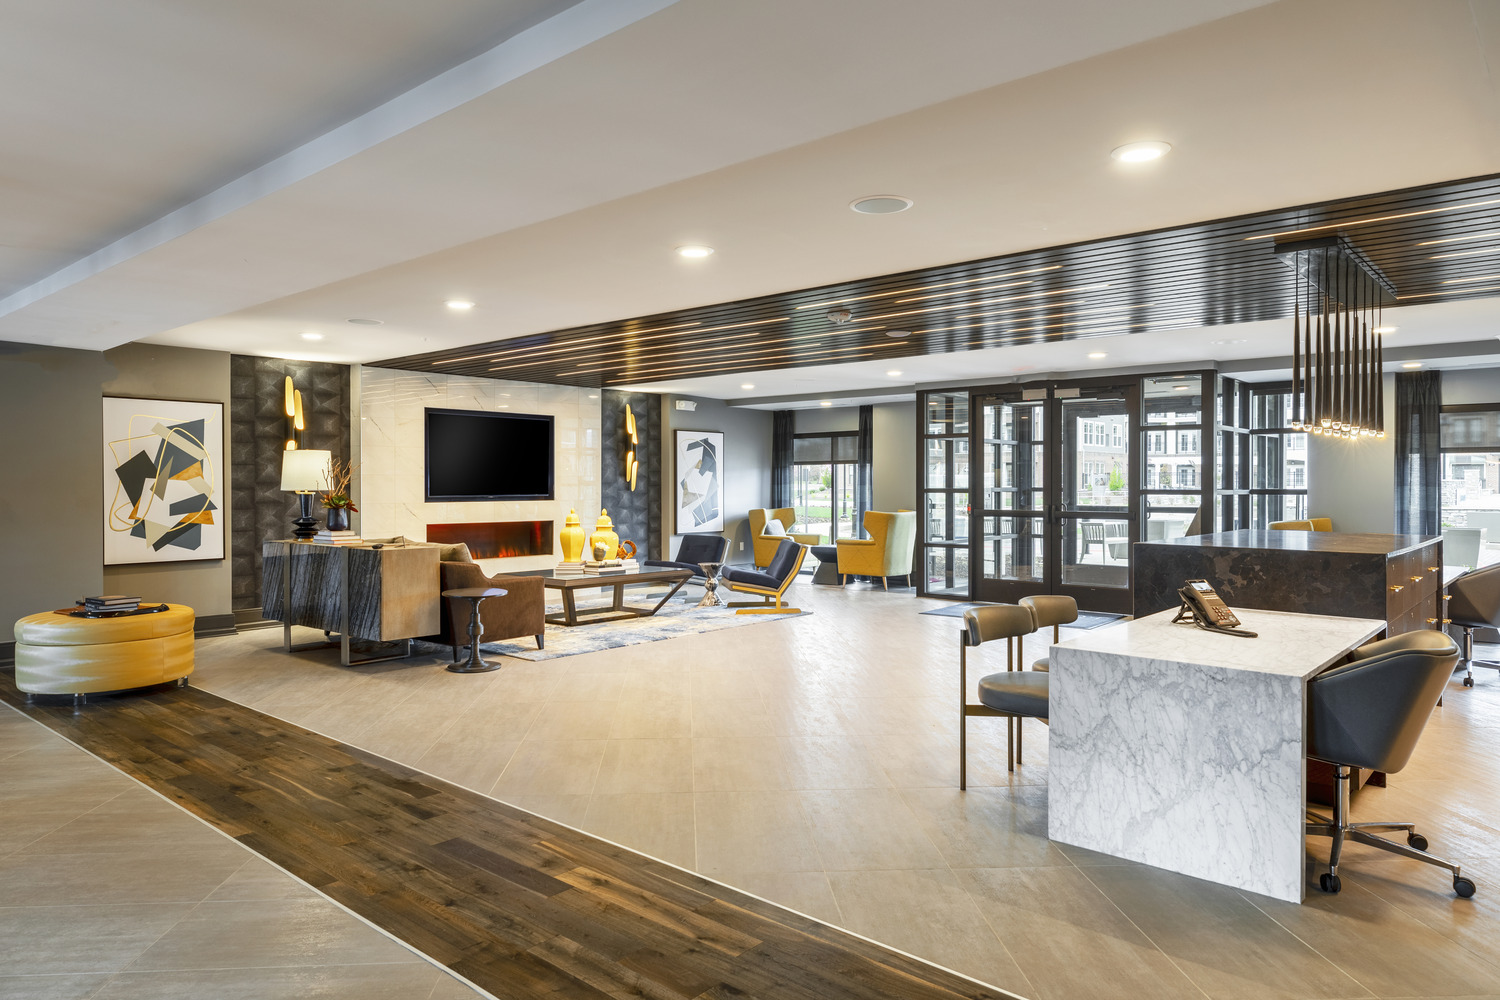 CBG builds J Creekside at Exton, a 291-Unit Luxury Community Across Four Buildings in Exton, PA - Image #5